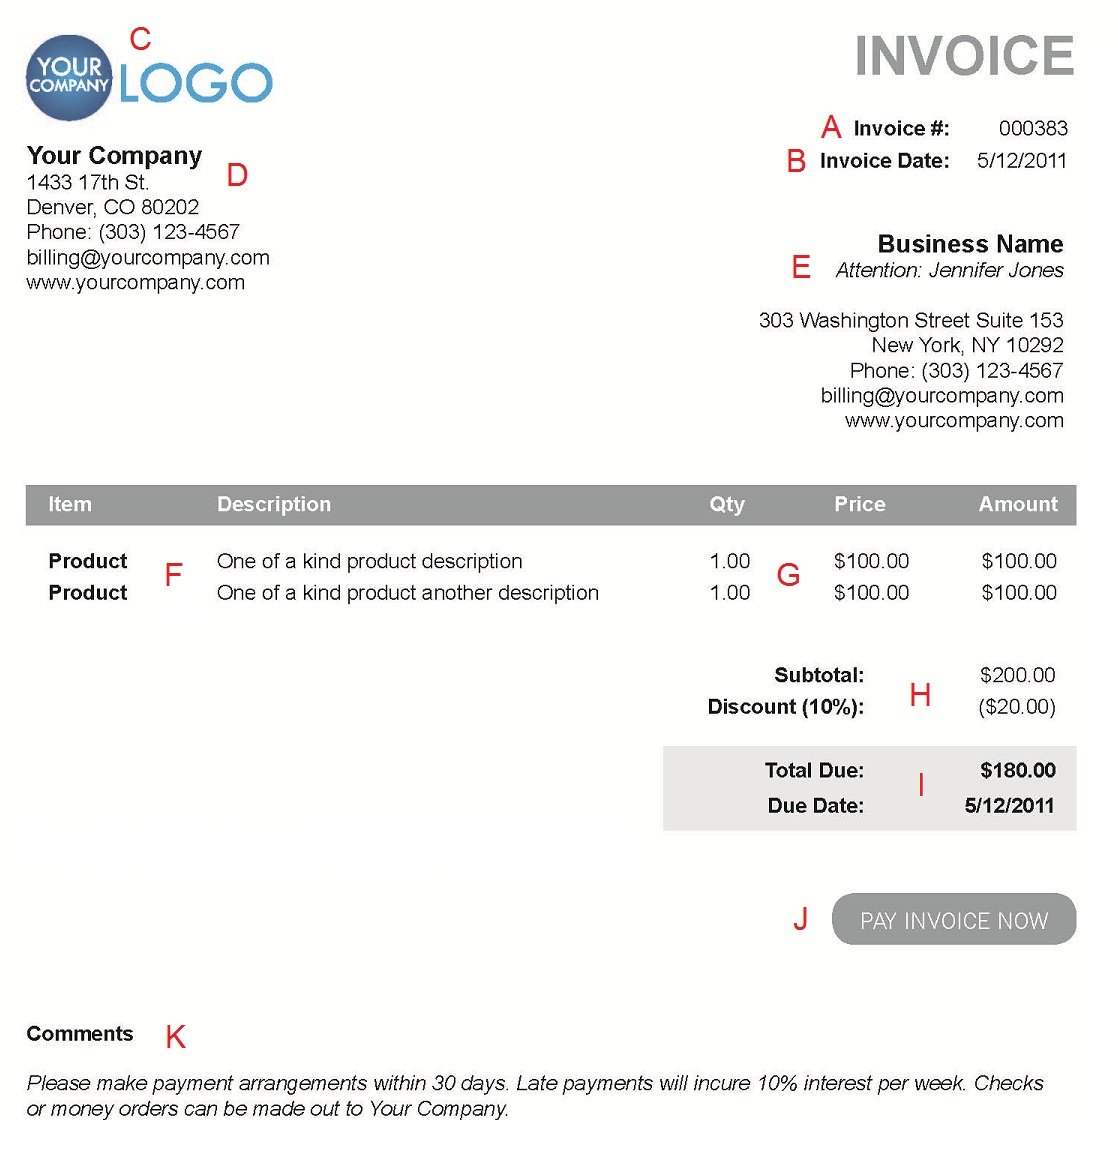 Texasgardeningus  Unique The  Different Sections Of An Electronic Payment Invoice With Exquisite A  With Agreeable Free Online Invoices Templates Also Invoice Accrual In Addition Invoice Templates For Pages And Commercial Invoice Excel As Well As Free Proforma Invoice Template Additionally Purchase Order Invoice Process From Paysimplecom With Texasgardeningus  Exquisite The  Different Sections Of An Electronic Payment Invoice With Agreeable A  And Unique Free Online Invoices Templates Also Invoice Accrual In Addition Invoice Templates For Pages From Paysimplecom